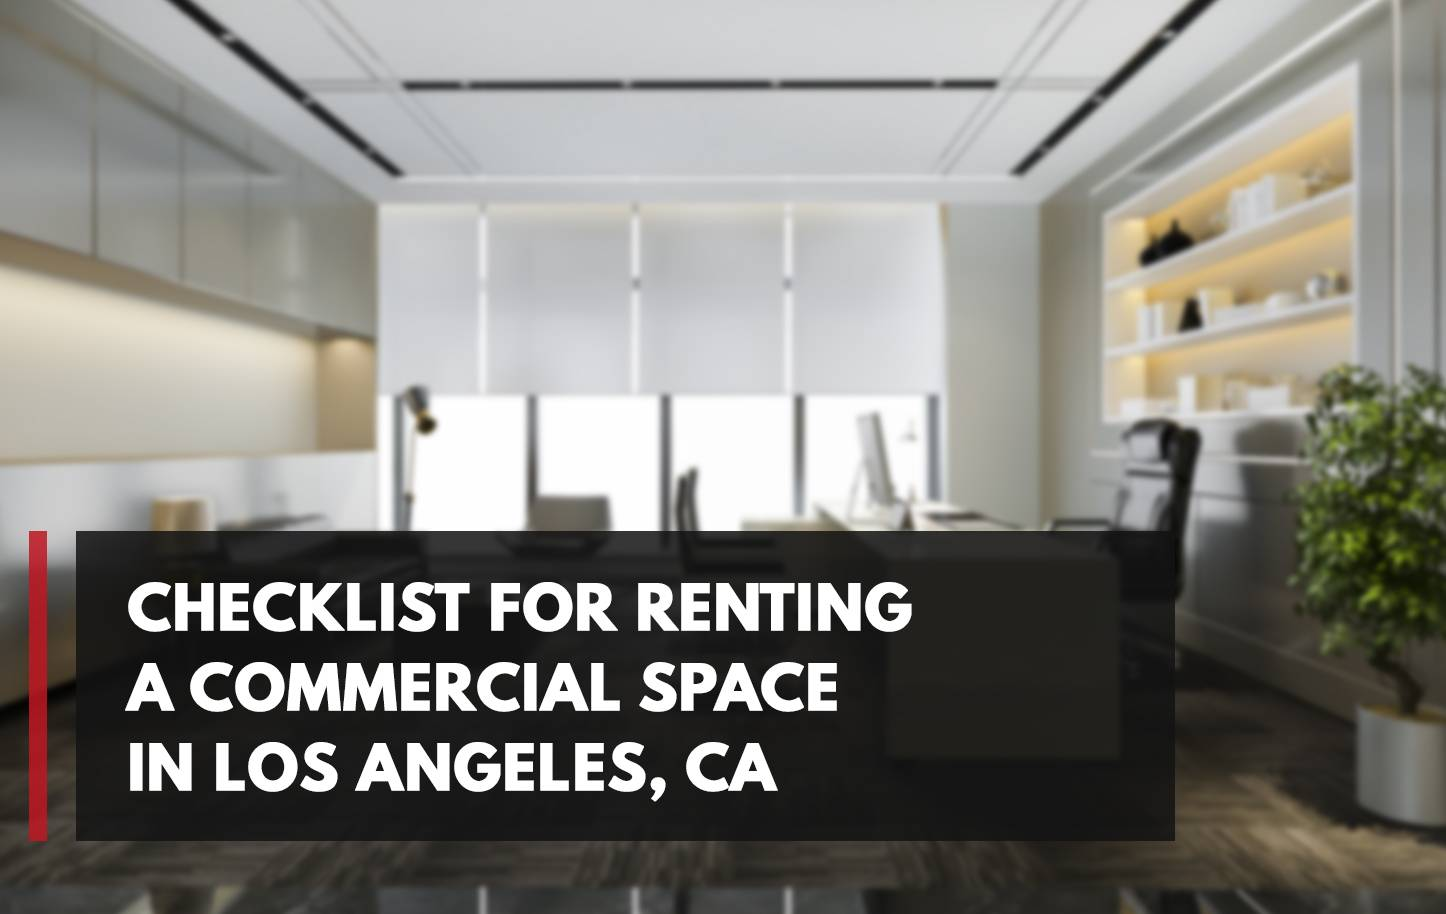 Checklist for Renting a Commercial Space in Los Angeles, CA